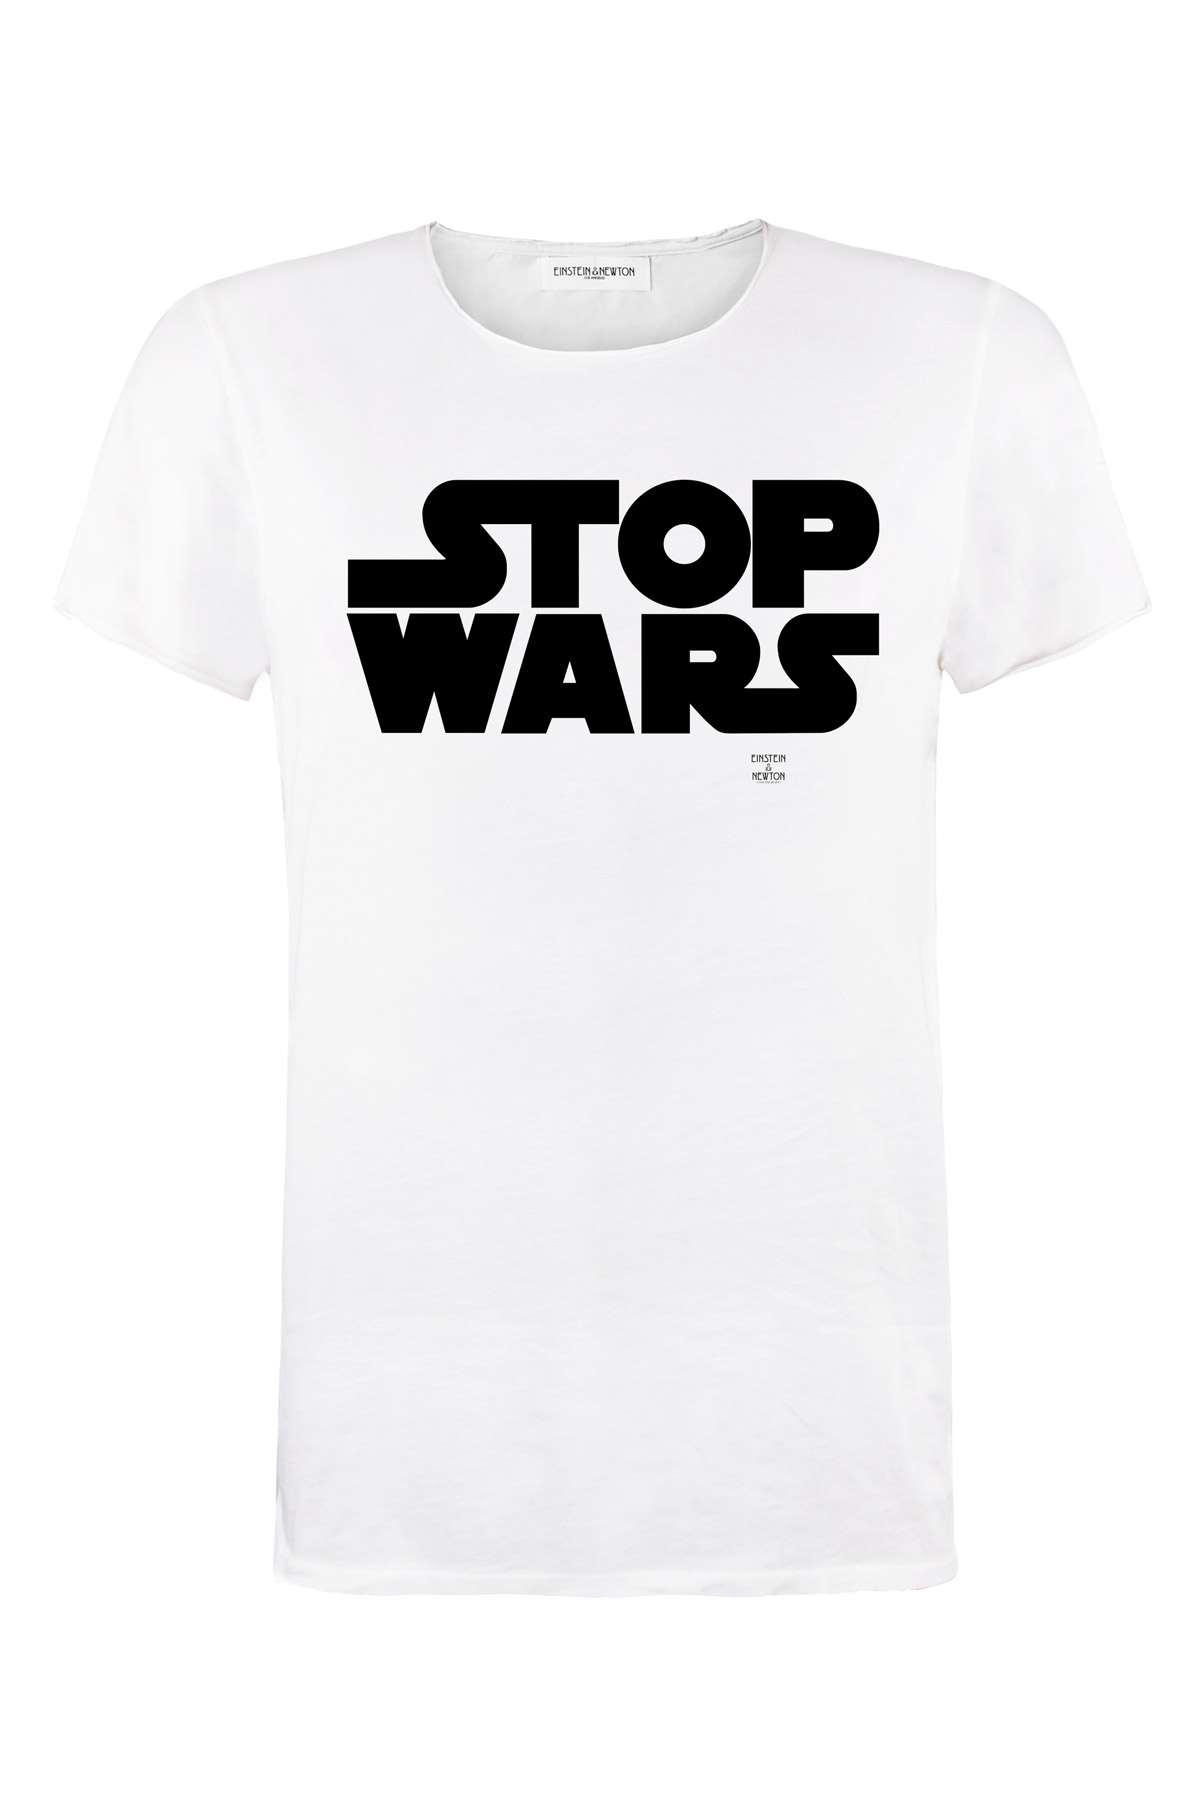 Stop Wars Shirt Bass